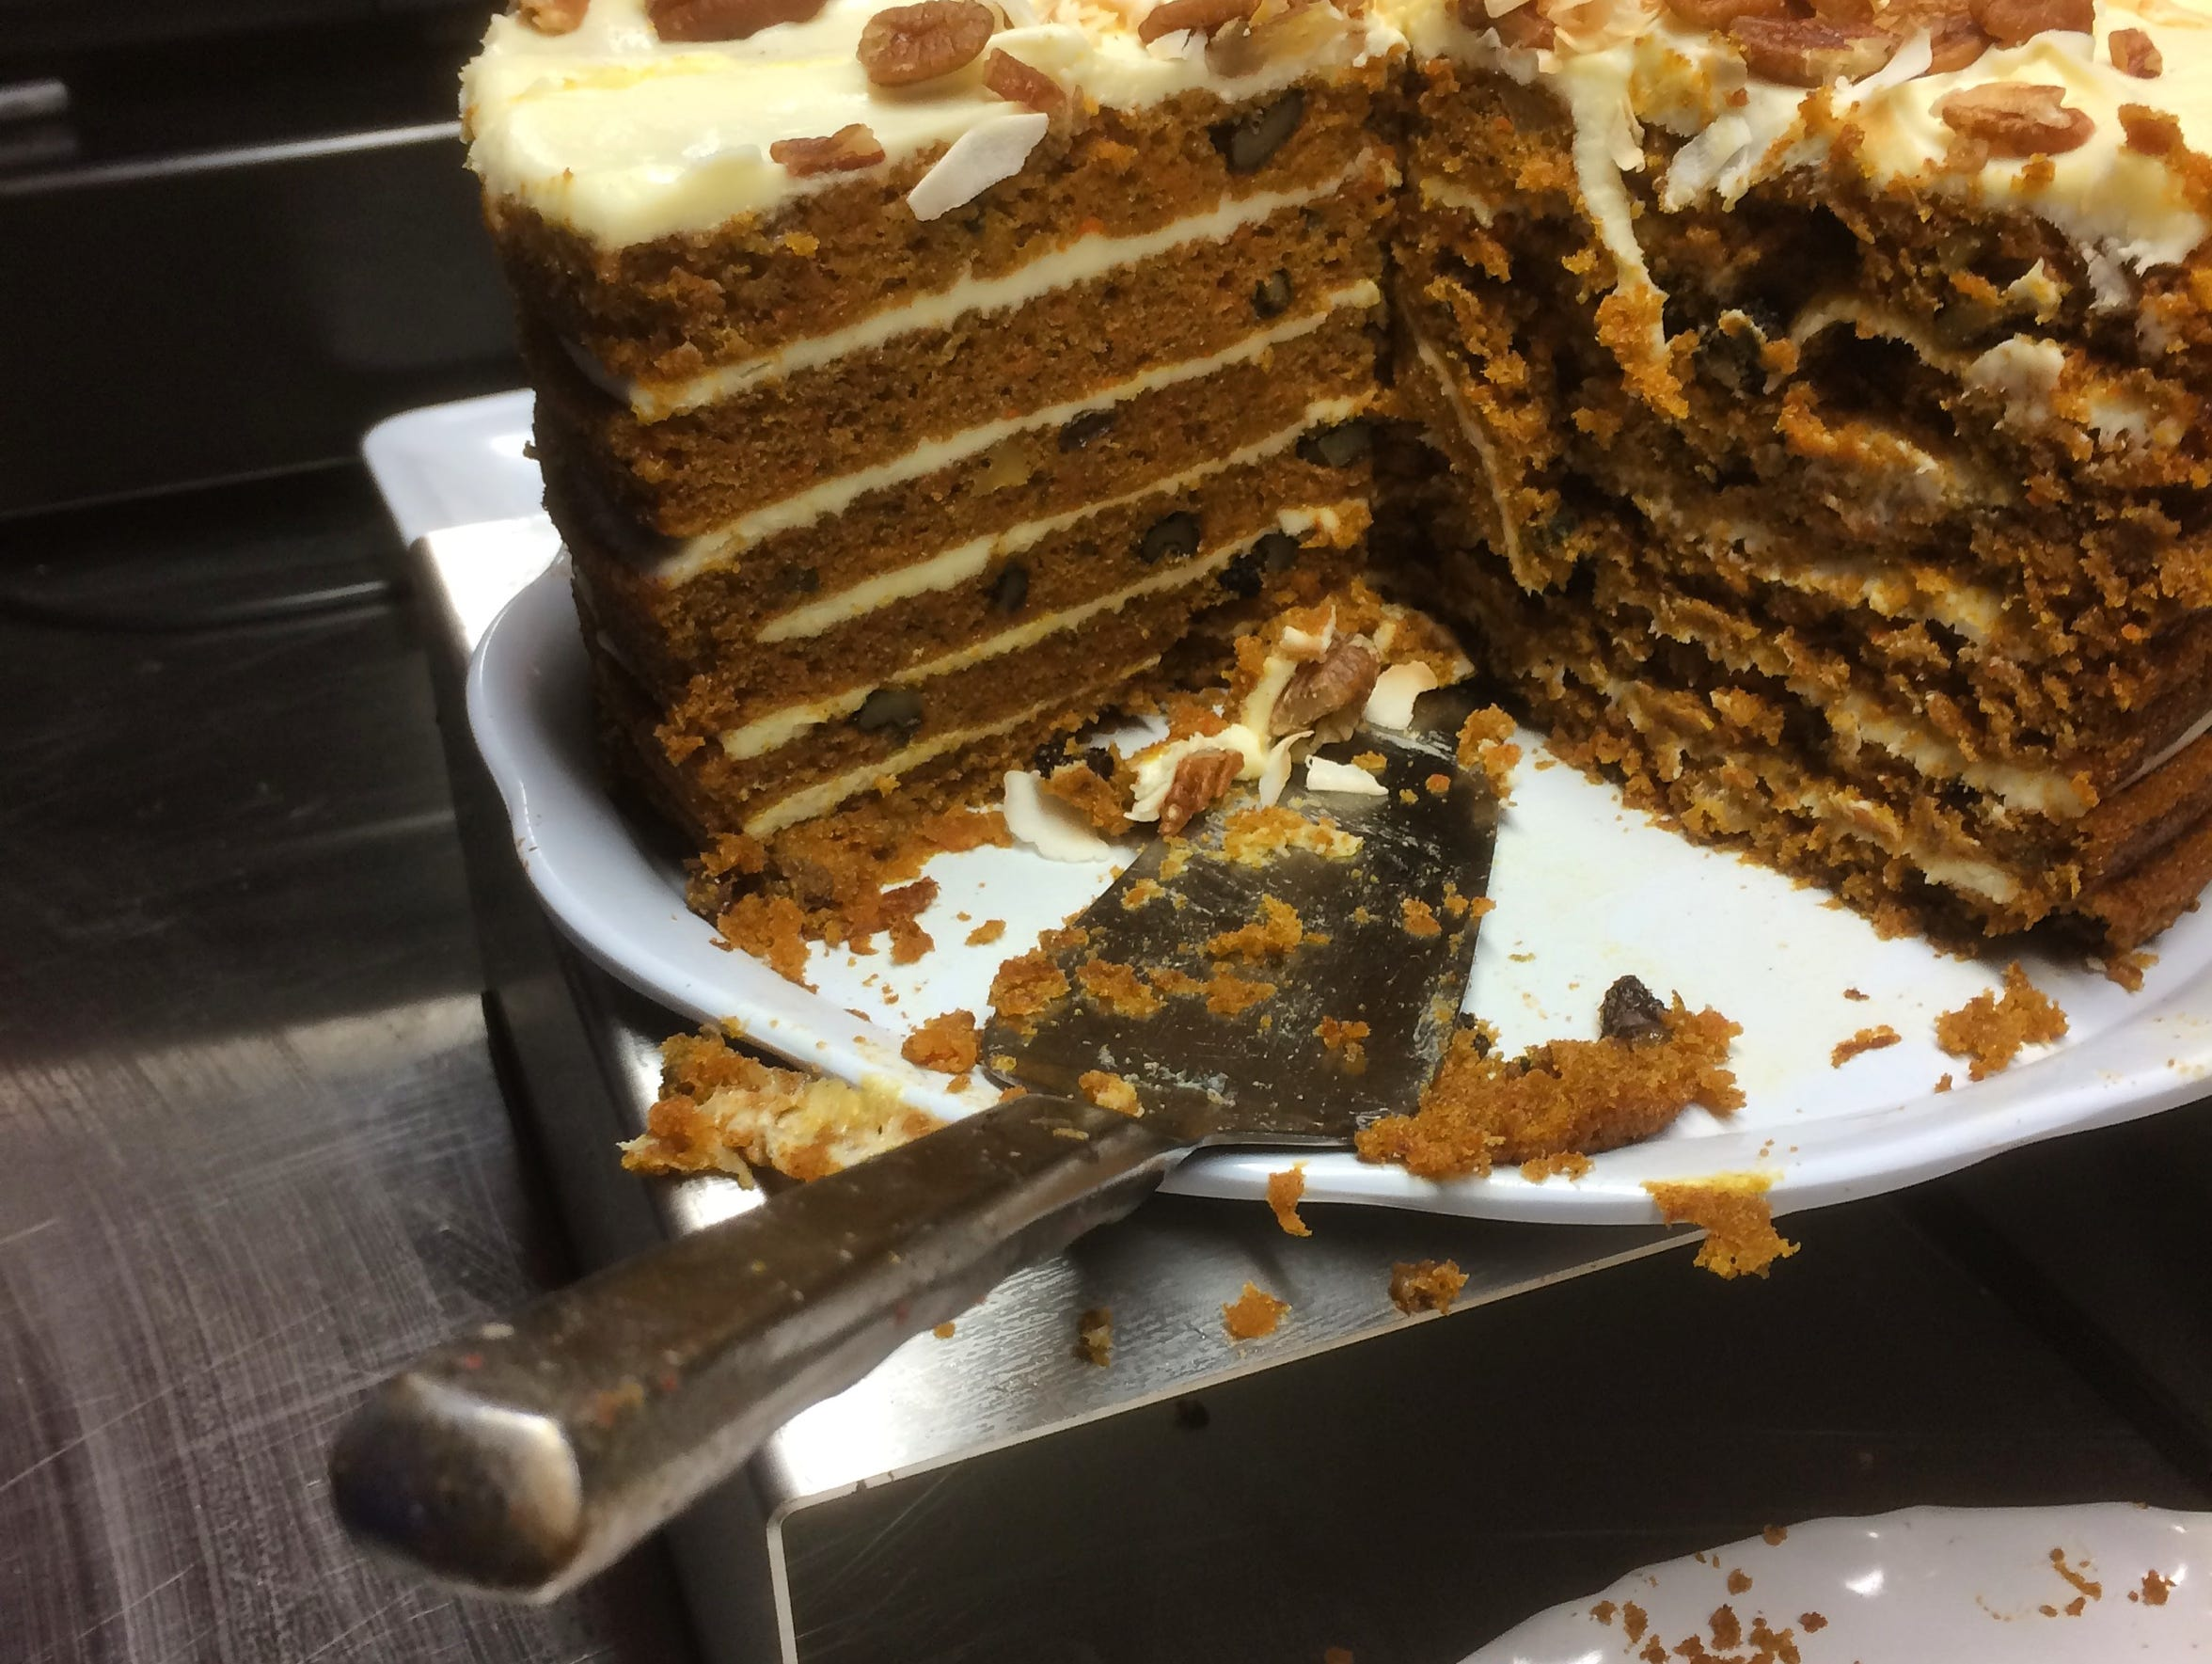 Go big or go home with the six-layer carrot cake.